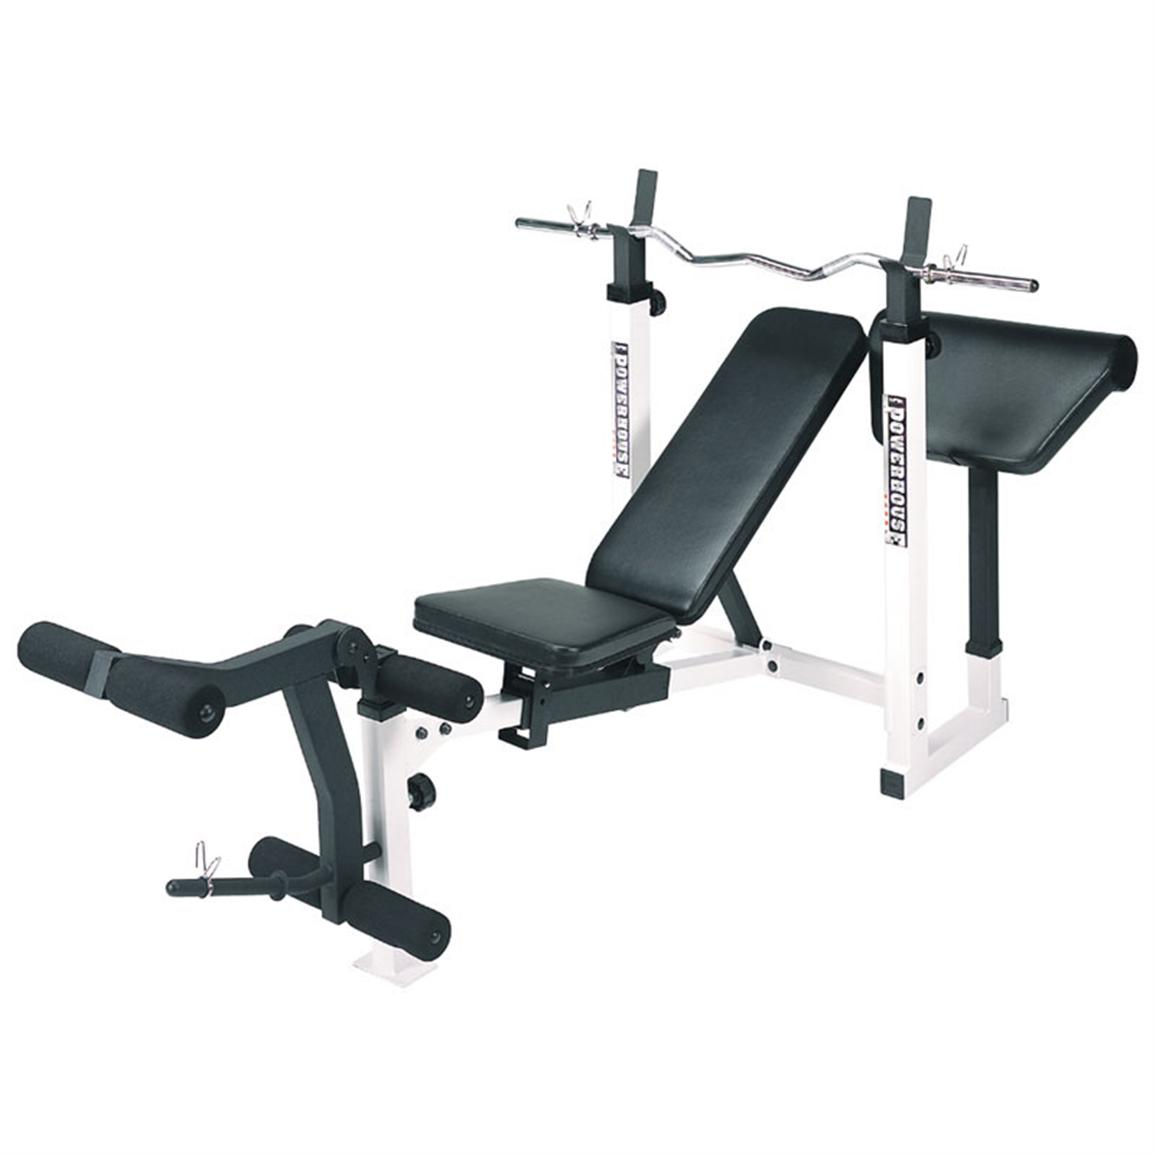 Powerhouse Weight Bench | Good Cheap Weight Bench | Powerhouse Fitness Weight Bench